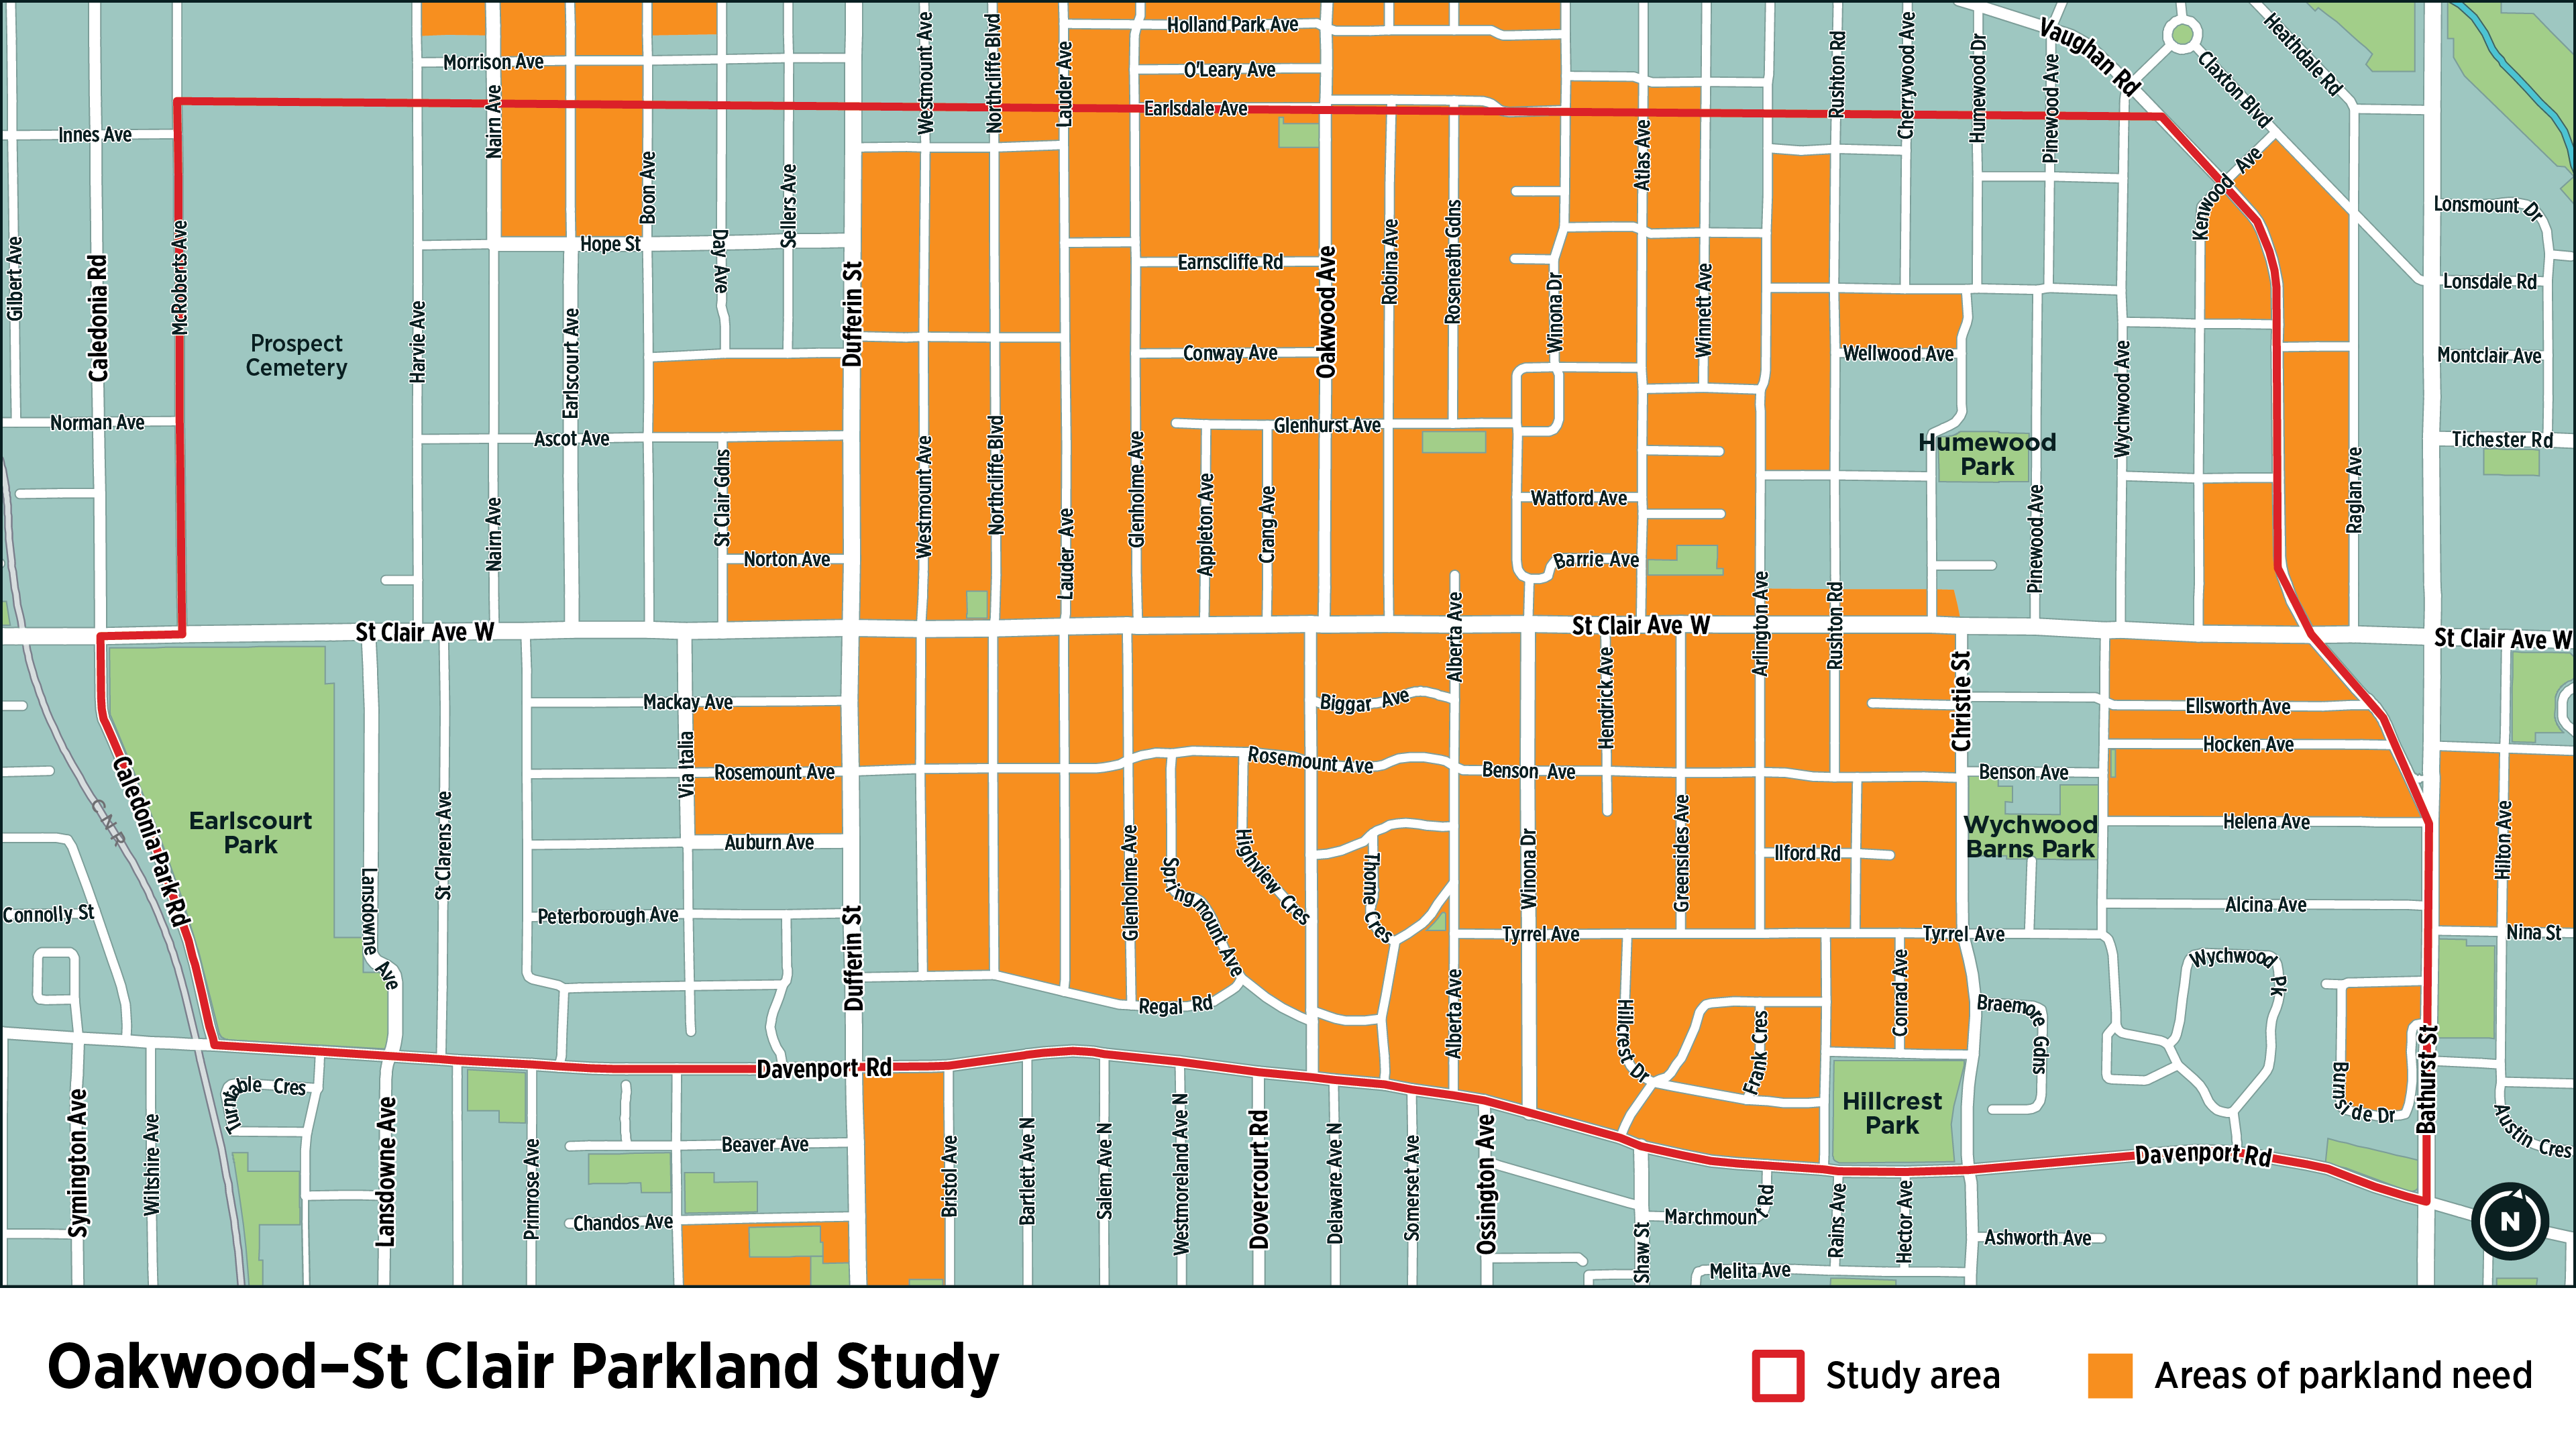 Map of Oakwood and St Clair area. Red outline describes the study area bordered by Davenport Rd. on the South, Bathurst St. on the East, Earlsdale Ave. on the North and Mc Roberts Ave/Caledonia Park Rd. on the West. The map also highlights blocks representing areas of parkland need which covers approximately 30% – 40% of the map shown.